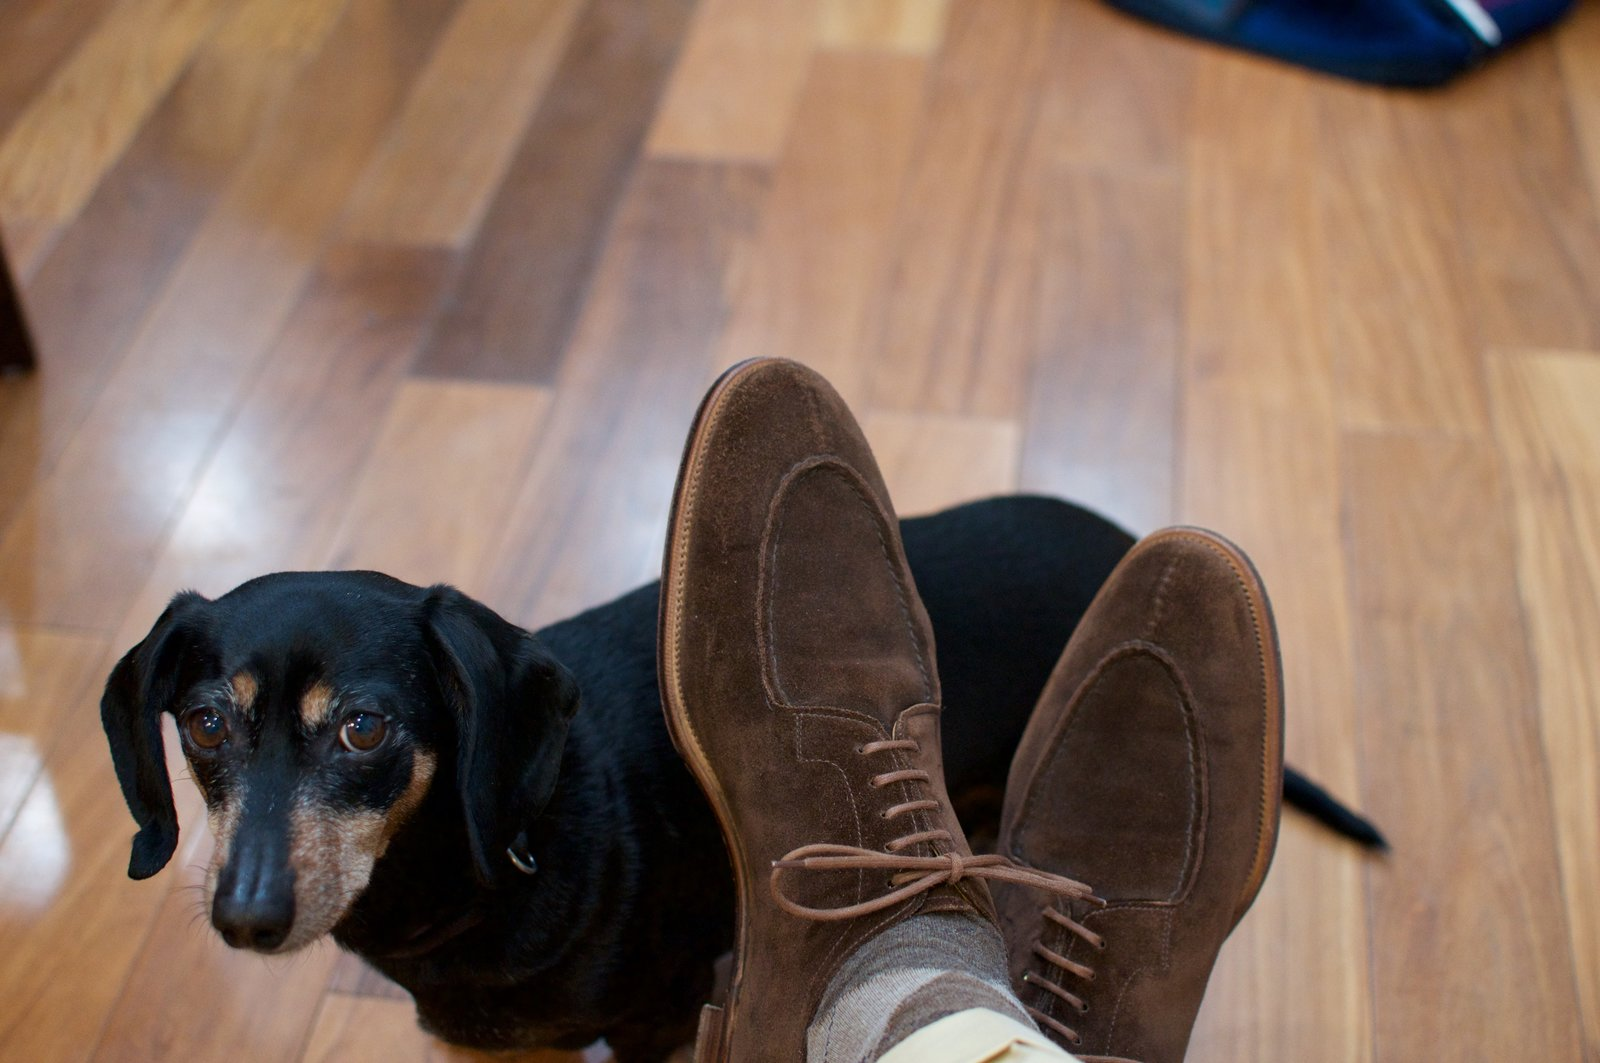 Edward Green Otter Suede Dovers - 2020-02-19 - 5.jpg